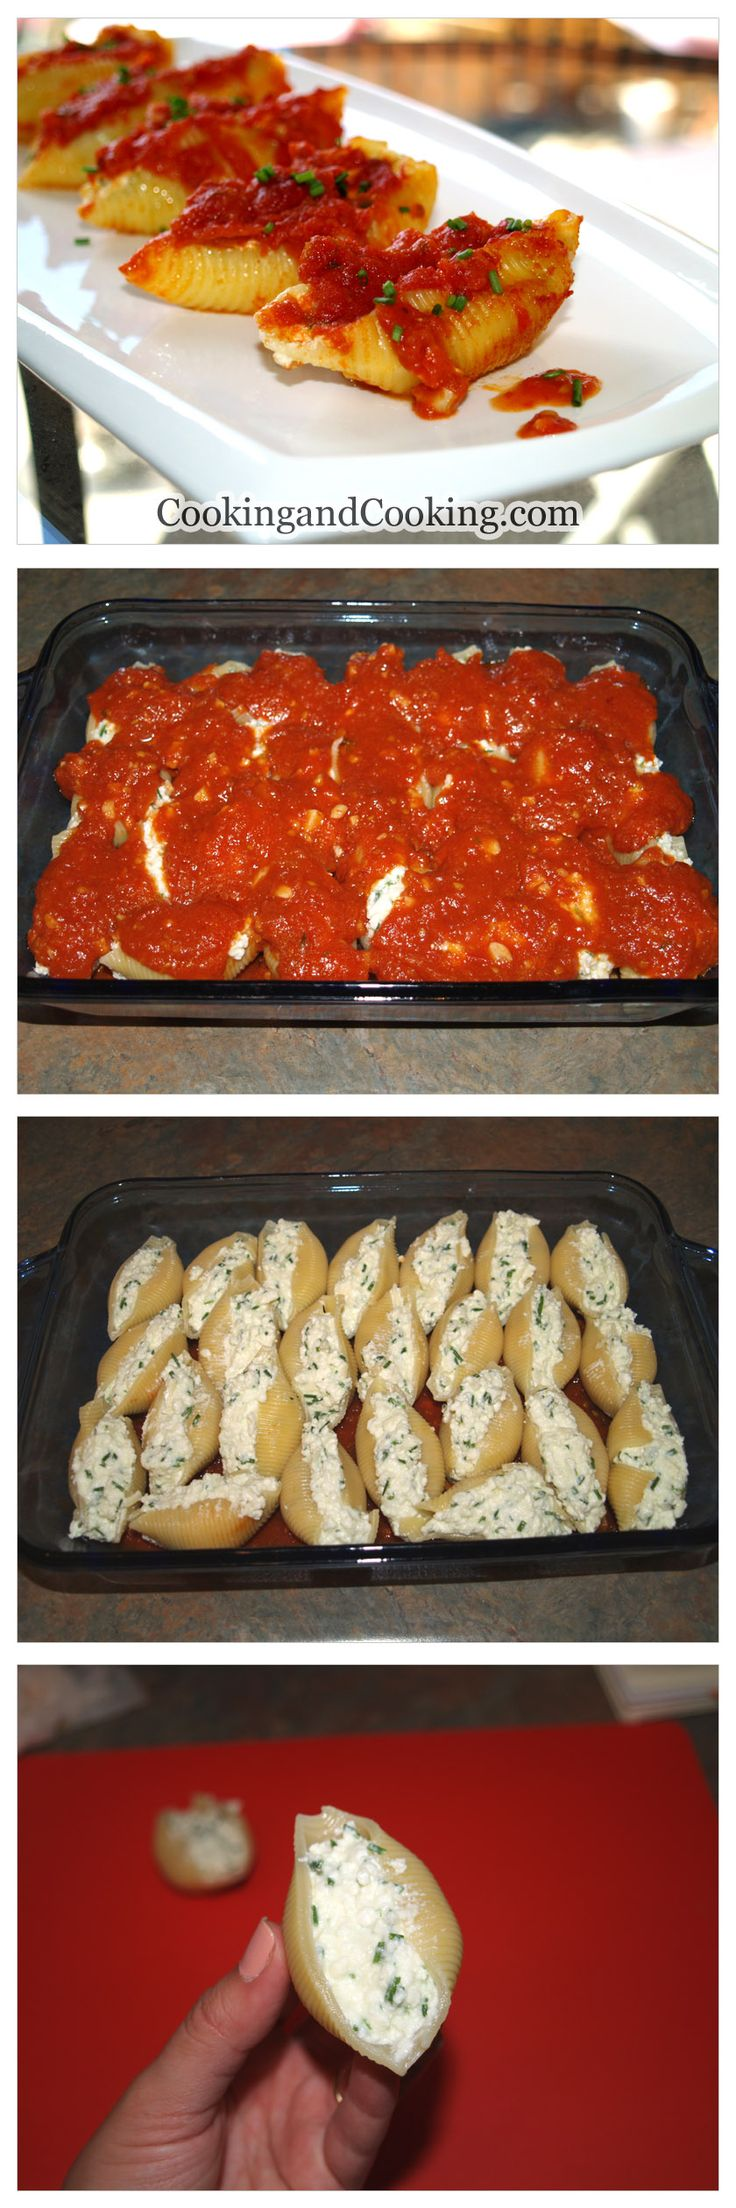 Ricotta Stuffed Shells Recipe - I'm going the easy way out and using pre-made sauce! But I found my dinner!